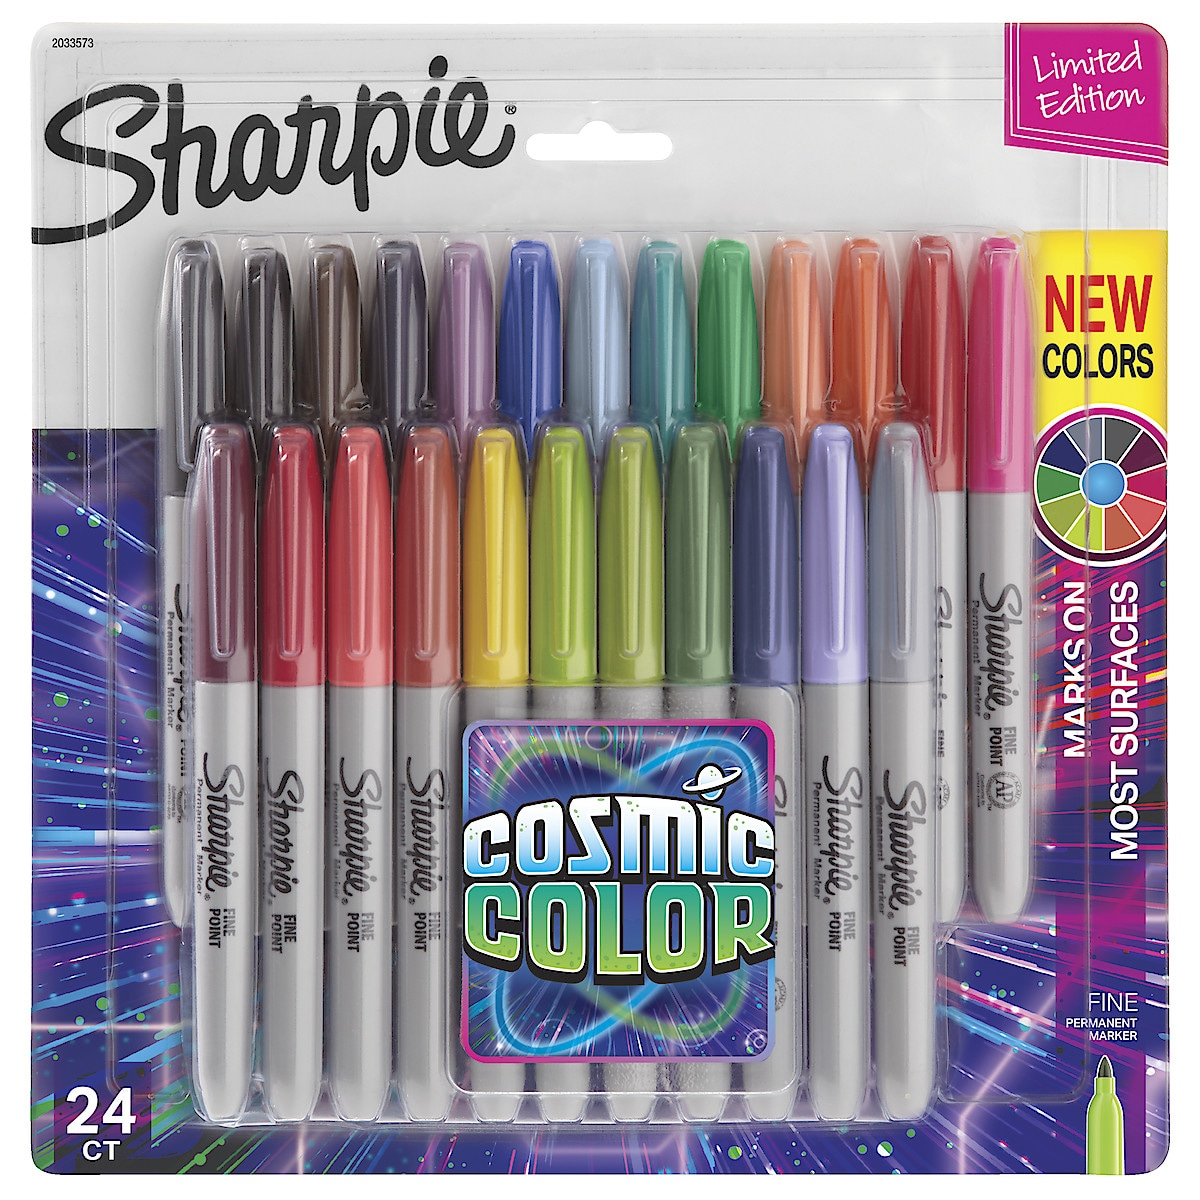 Sharpie Cosmic Fine Permanent Markers 24-pack